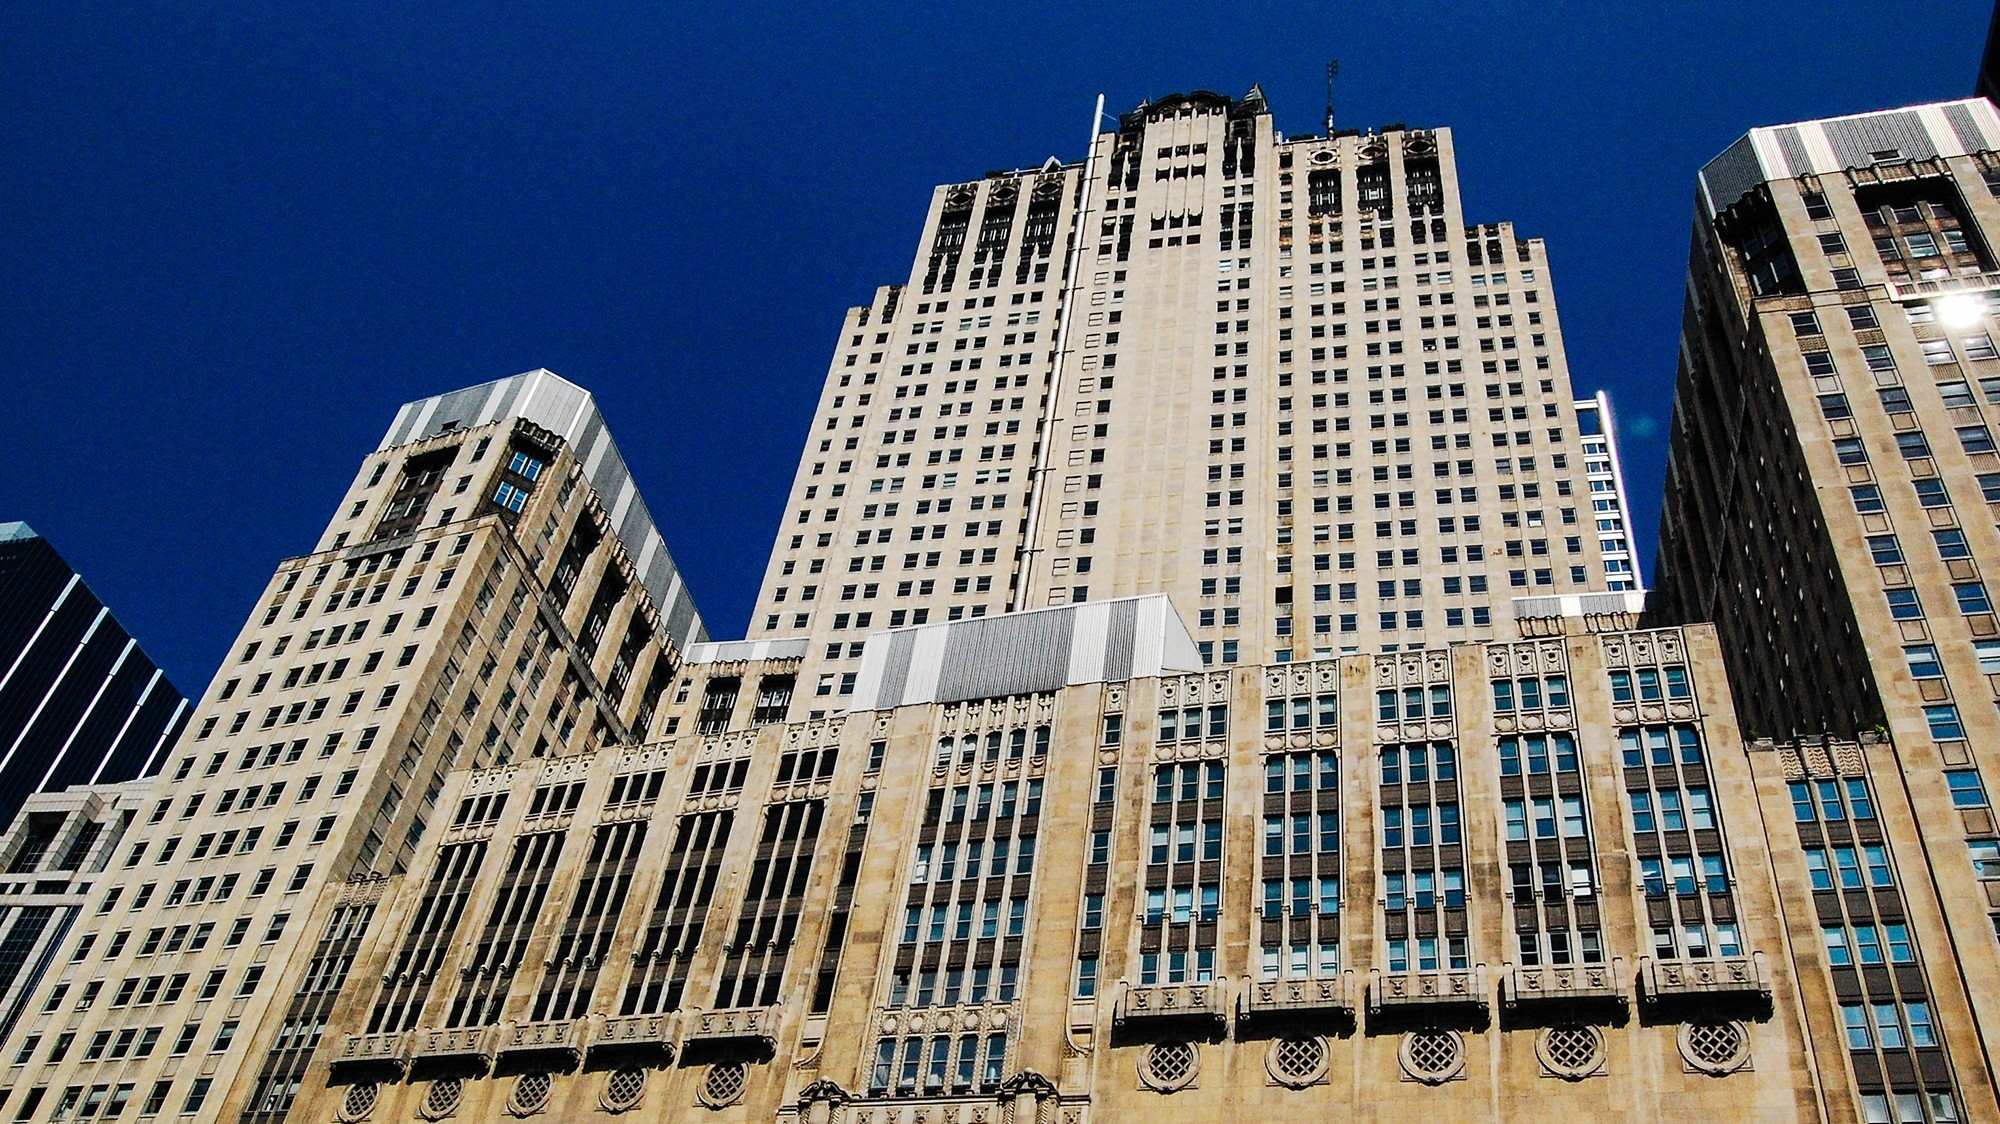 Chicago Official Says Dance Music Clubs Should Pay More Tax Than Opera Houses